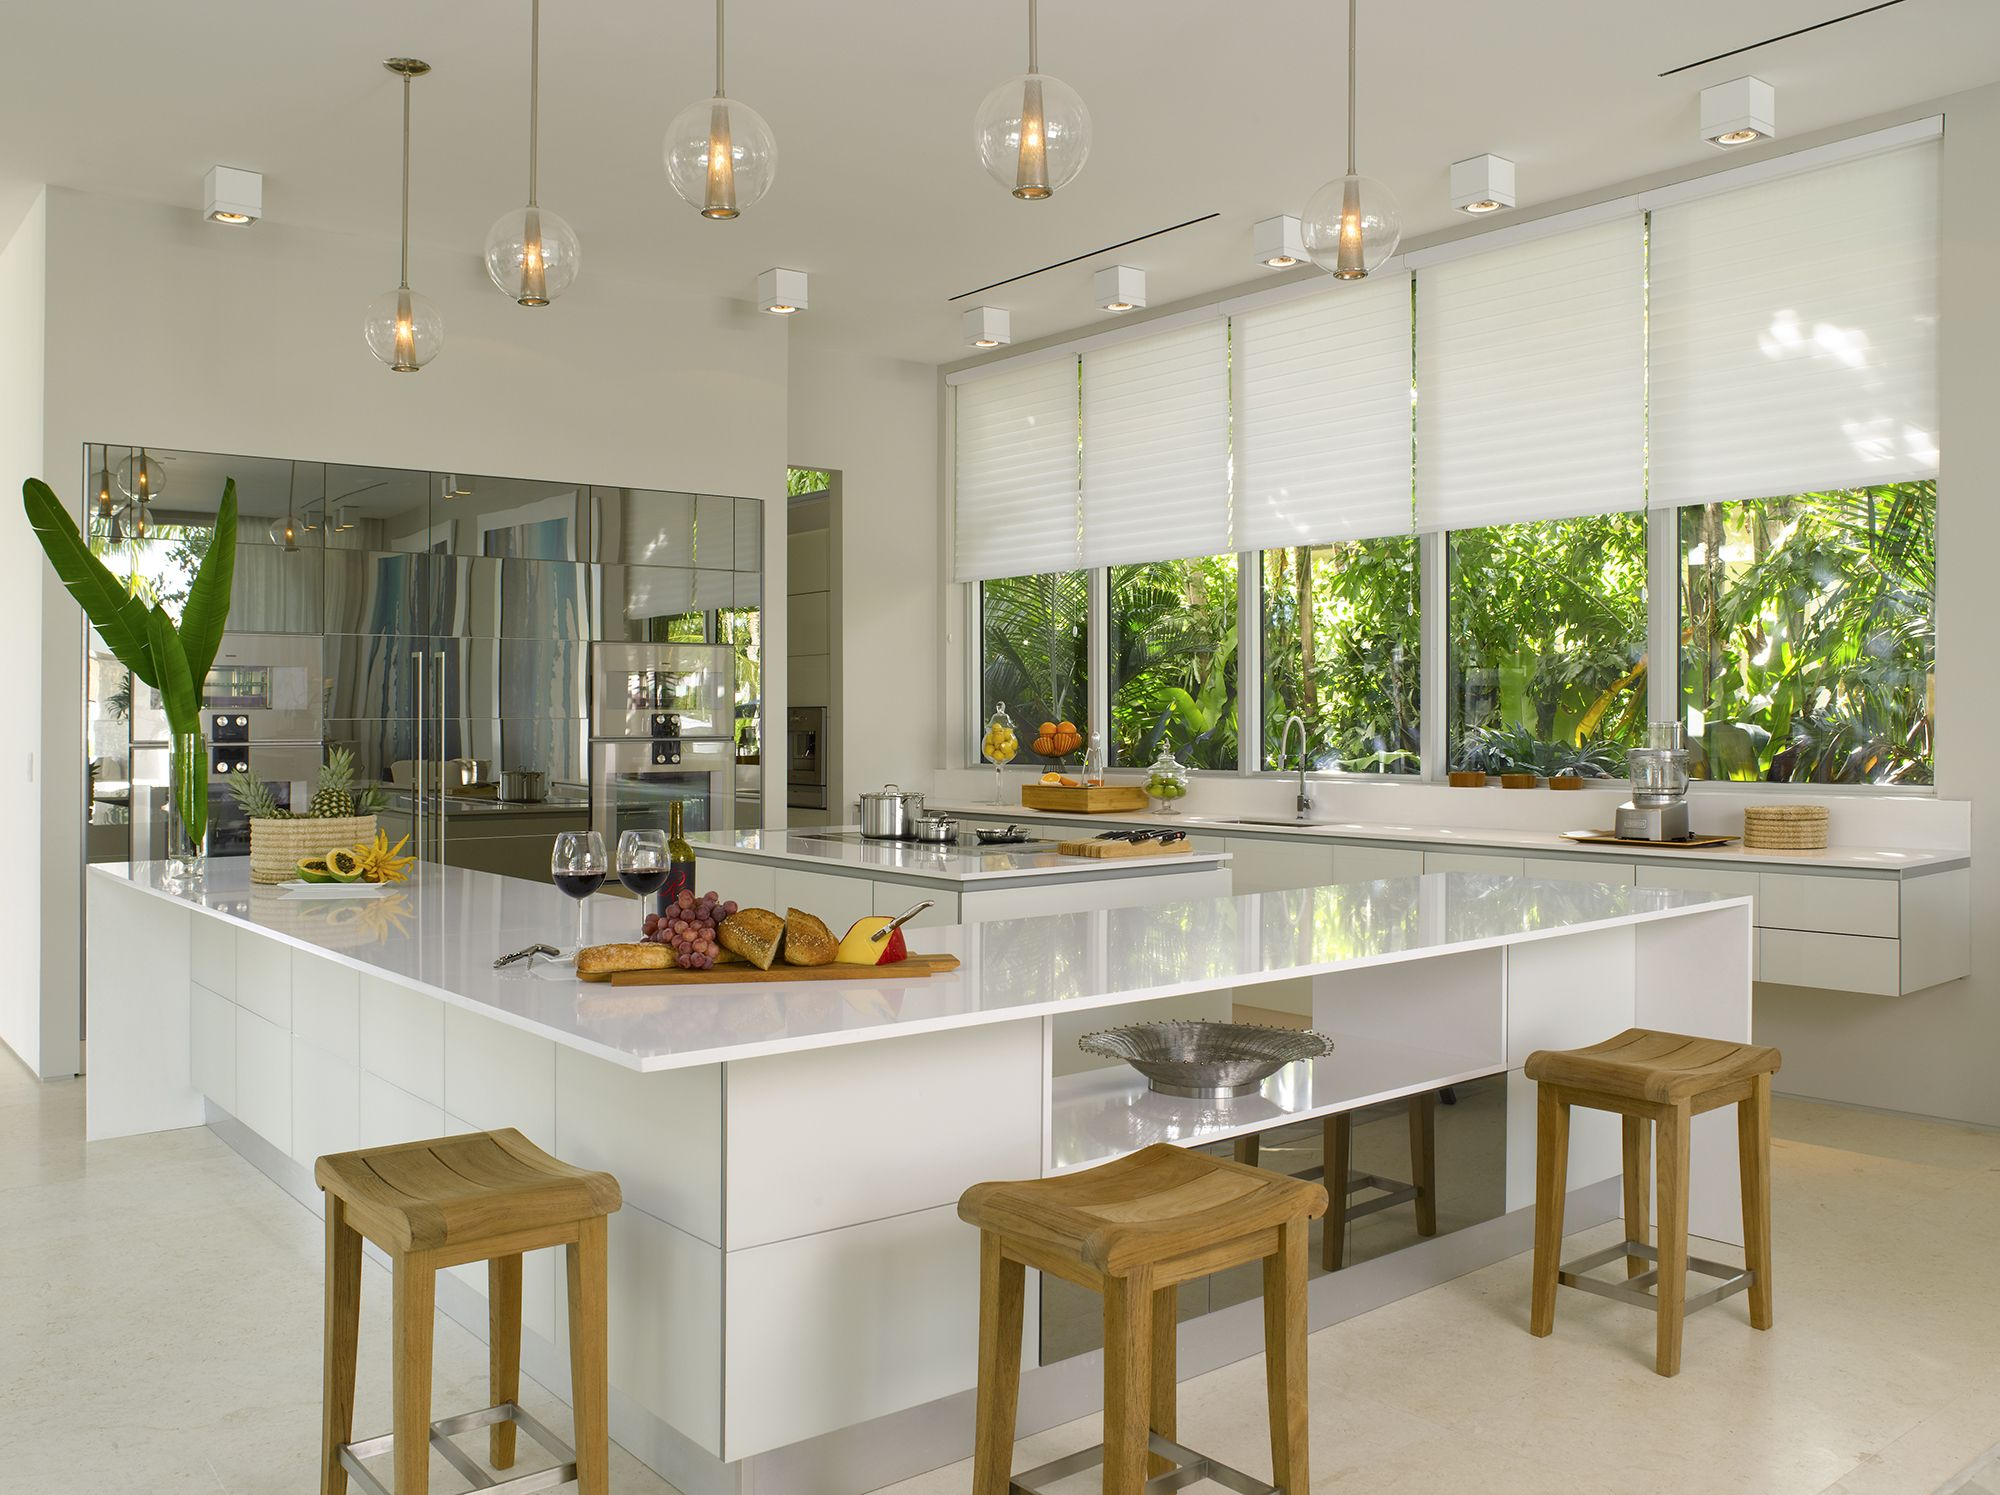 A Brilliant White Kitchen Design With Silhouette Window Shadings In The Elle D Cor Modern Life